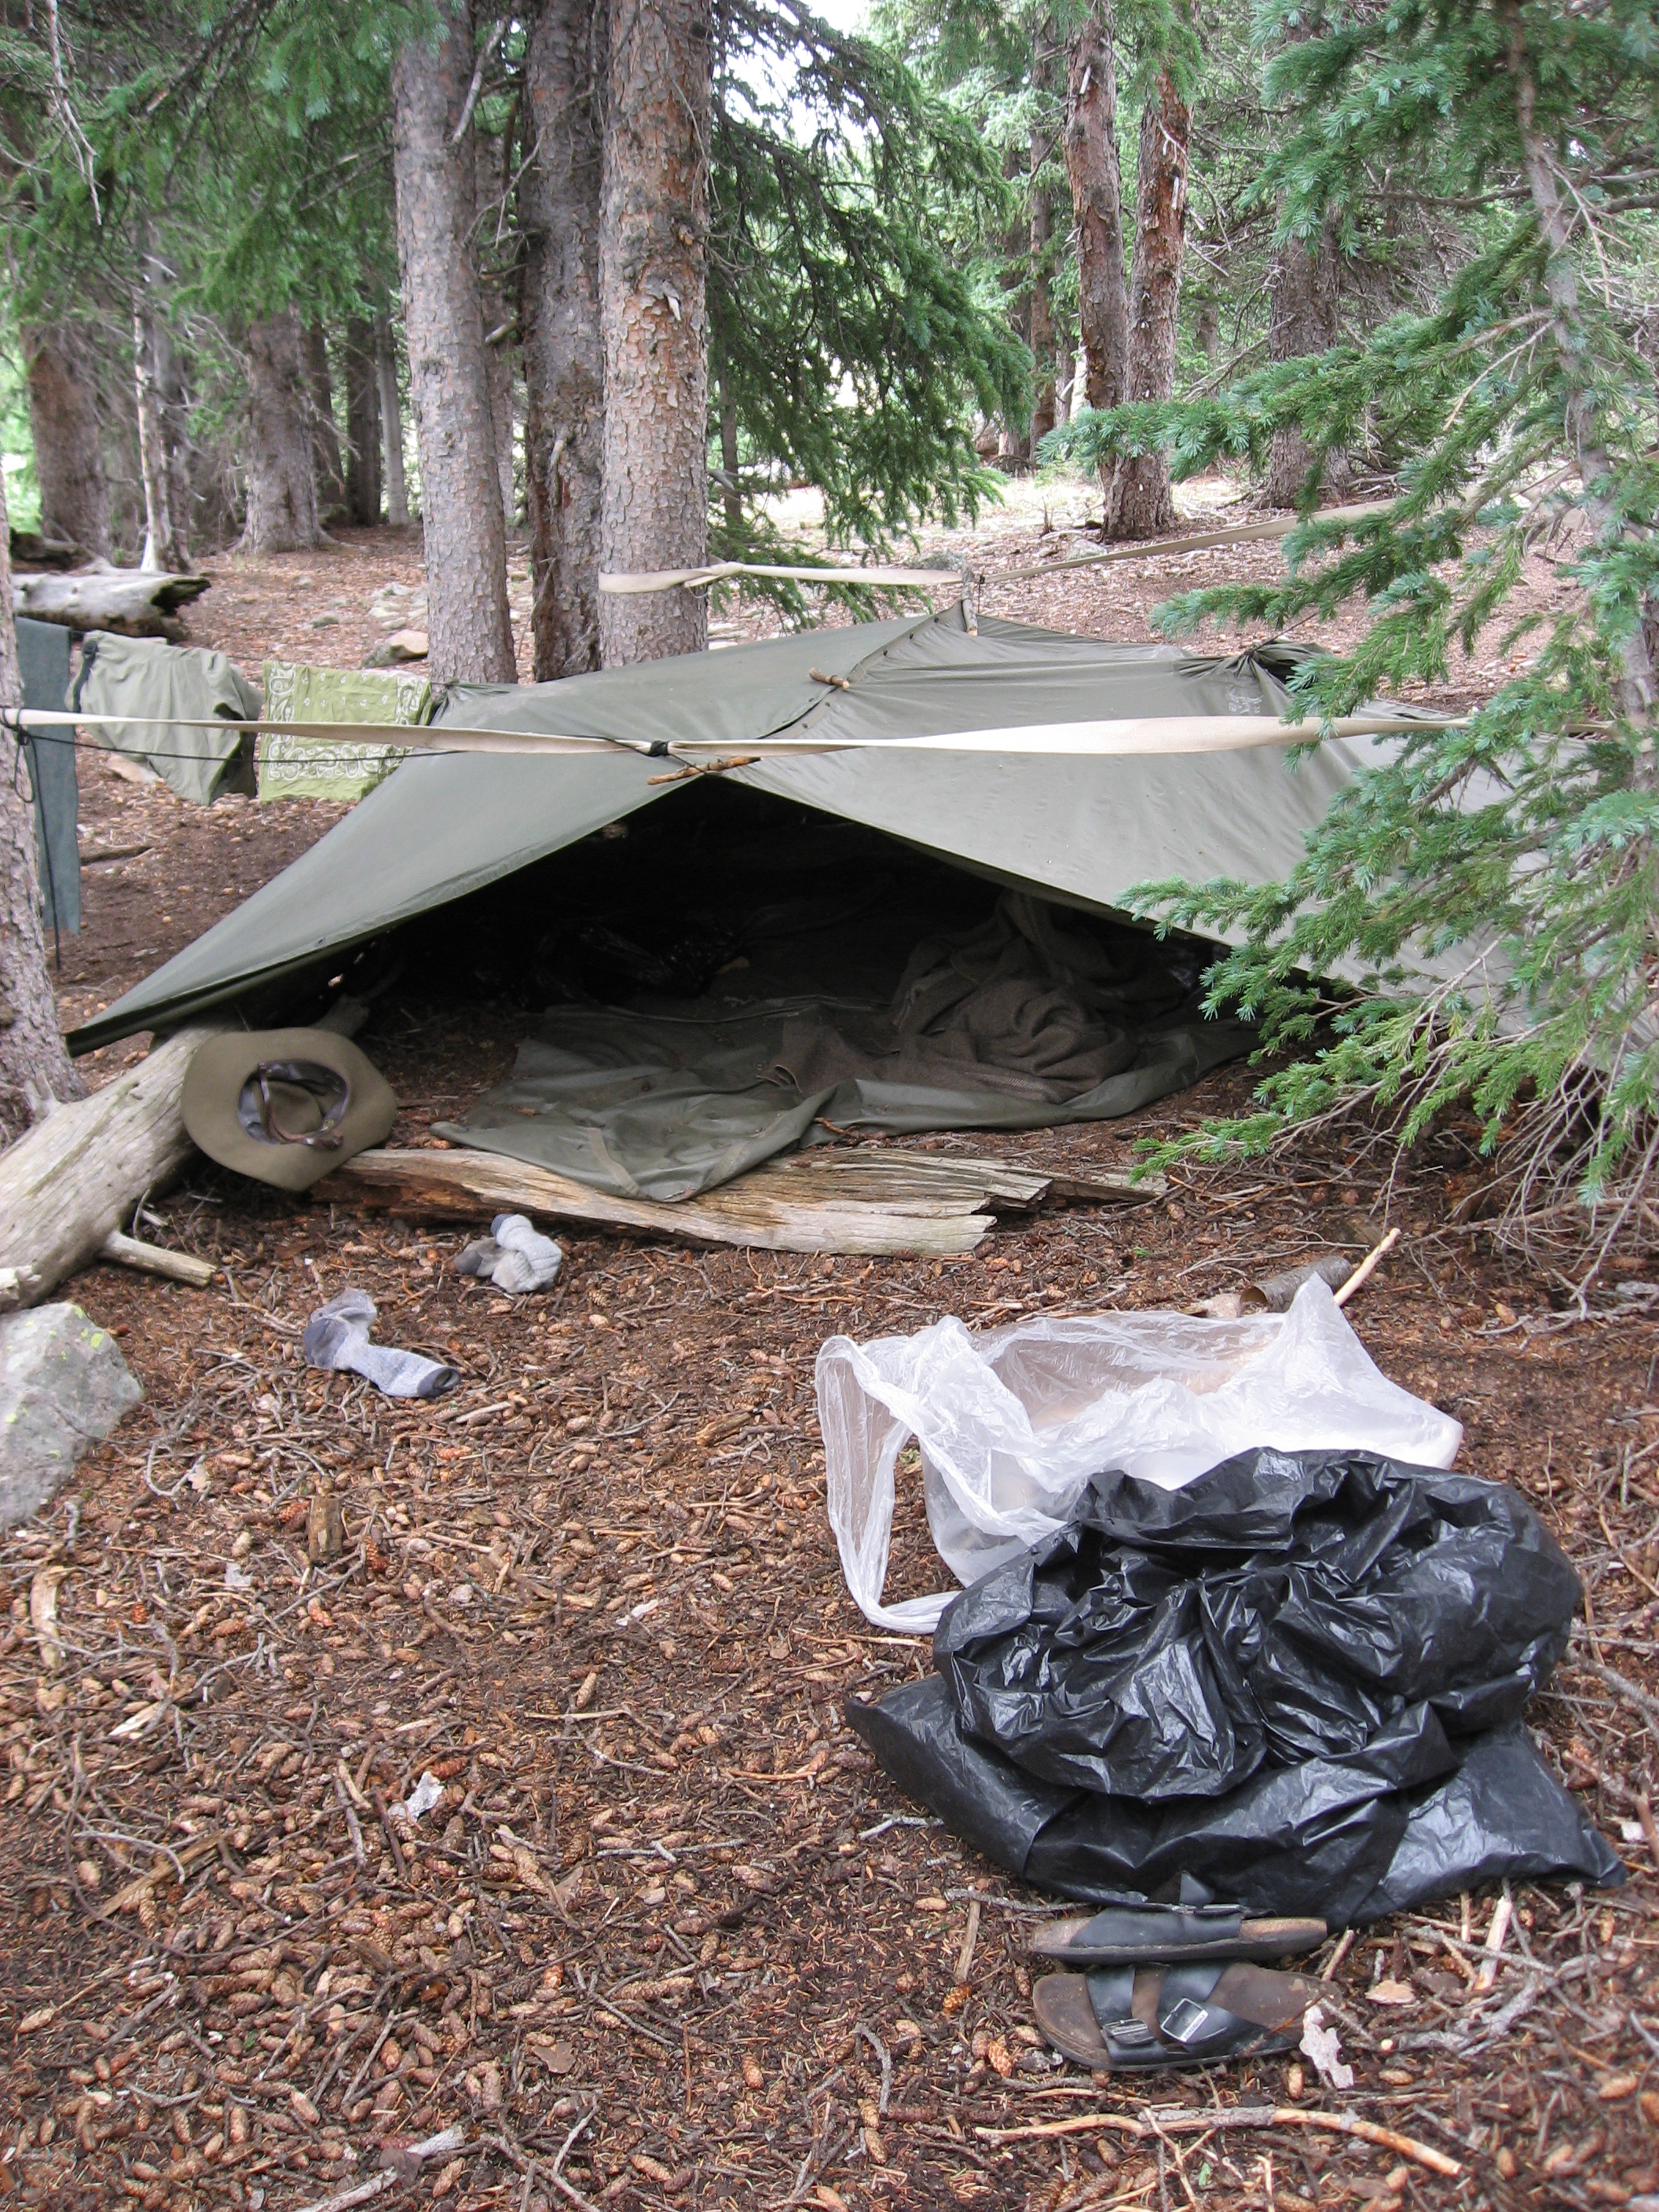 Our poncho tent which I was pretty proud of. Hannes Leland u0026 I shared it. & Survival School: Day 10 - by nikhil bhatla